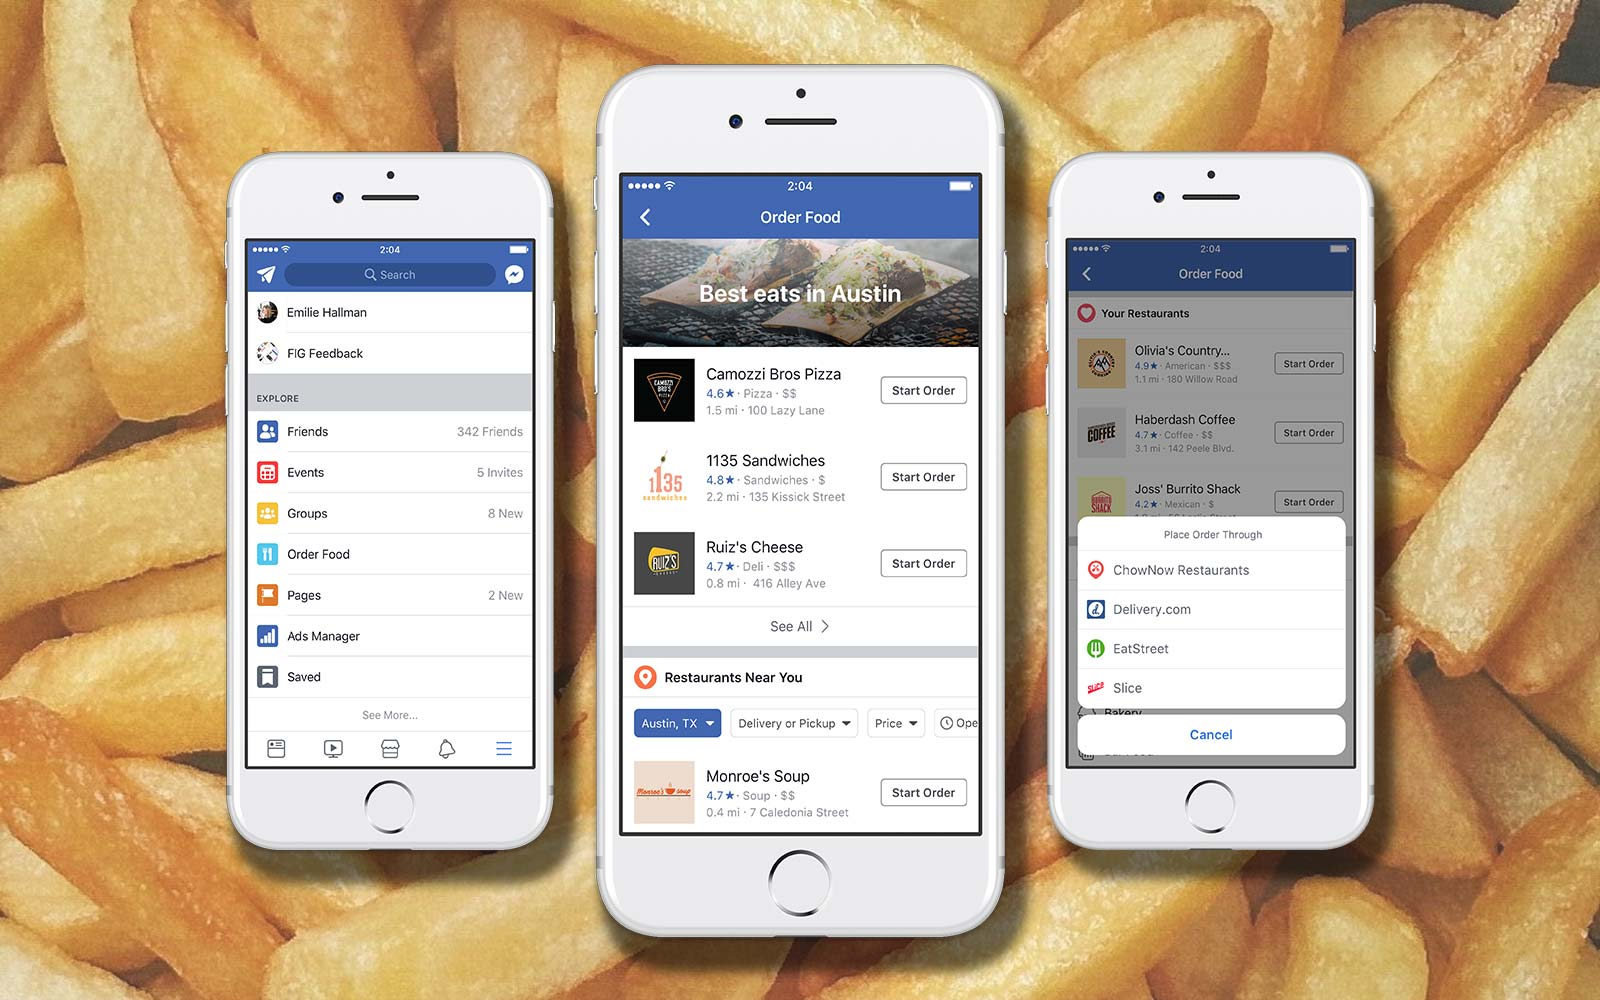 You can now order food right from the Facebook app